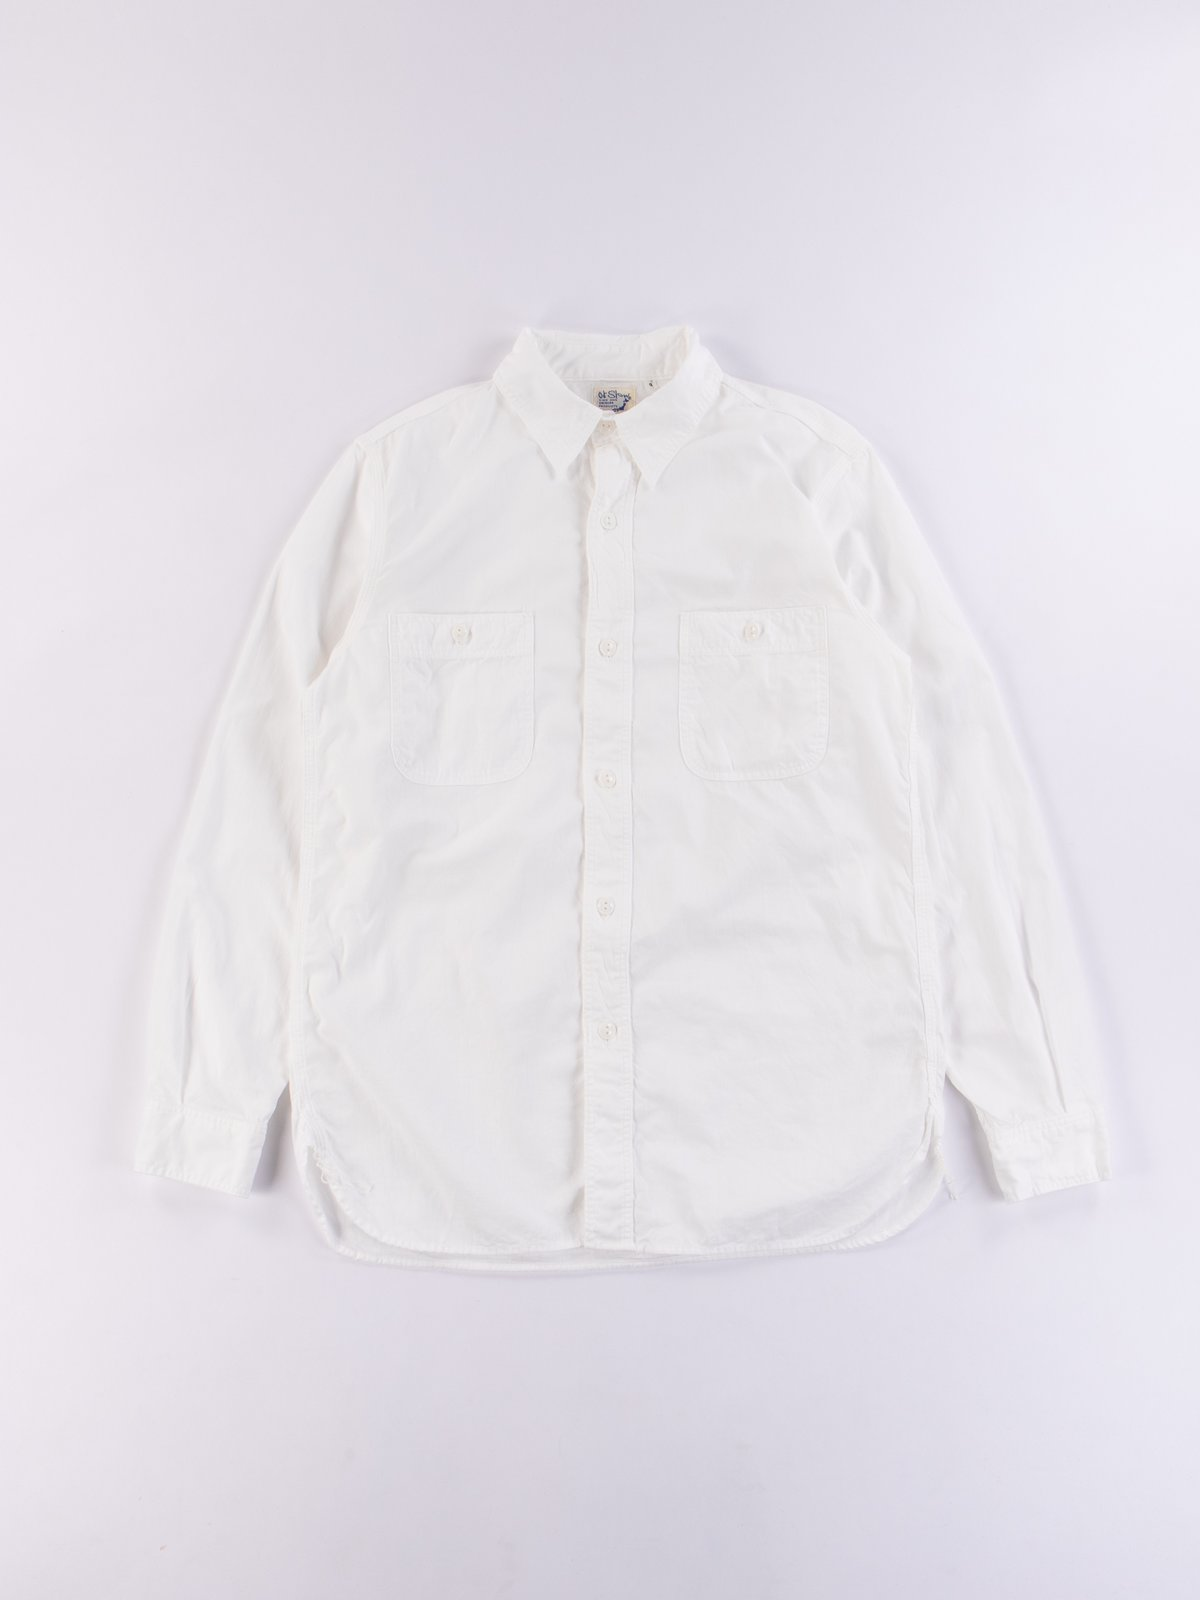 White Chambray Work Shirt - Image 1